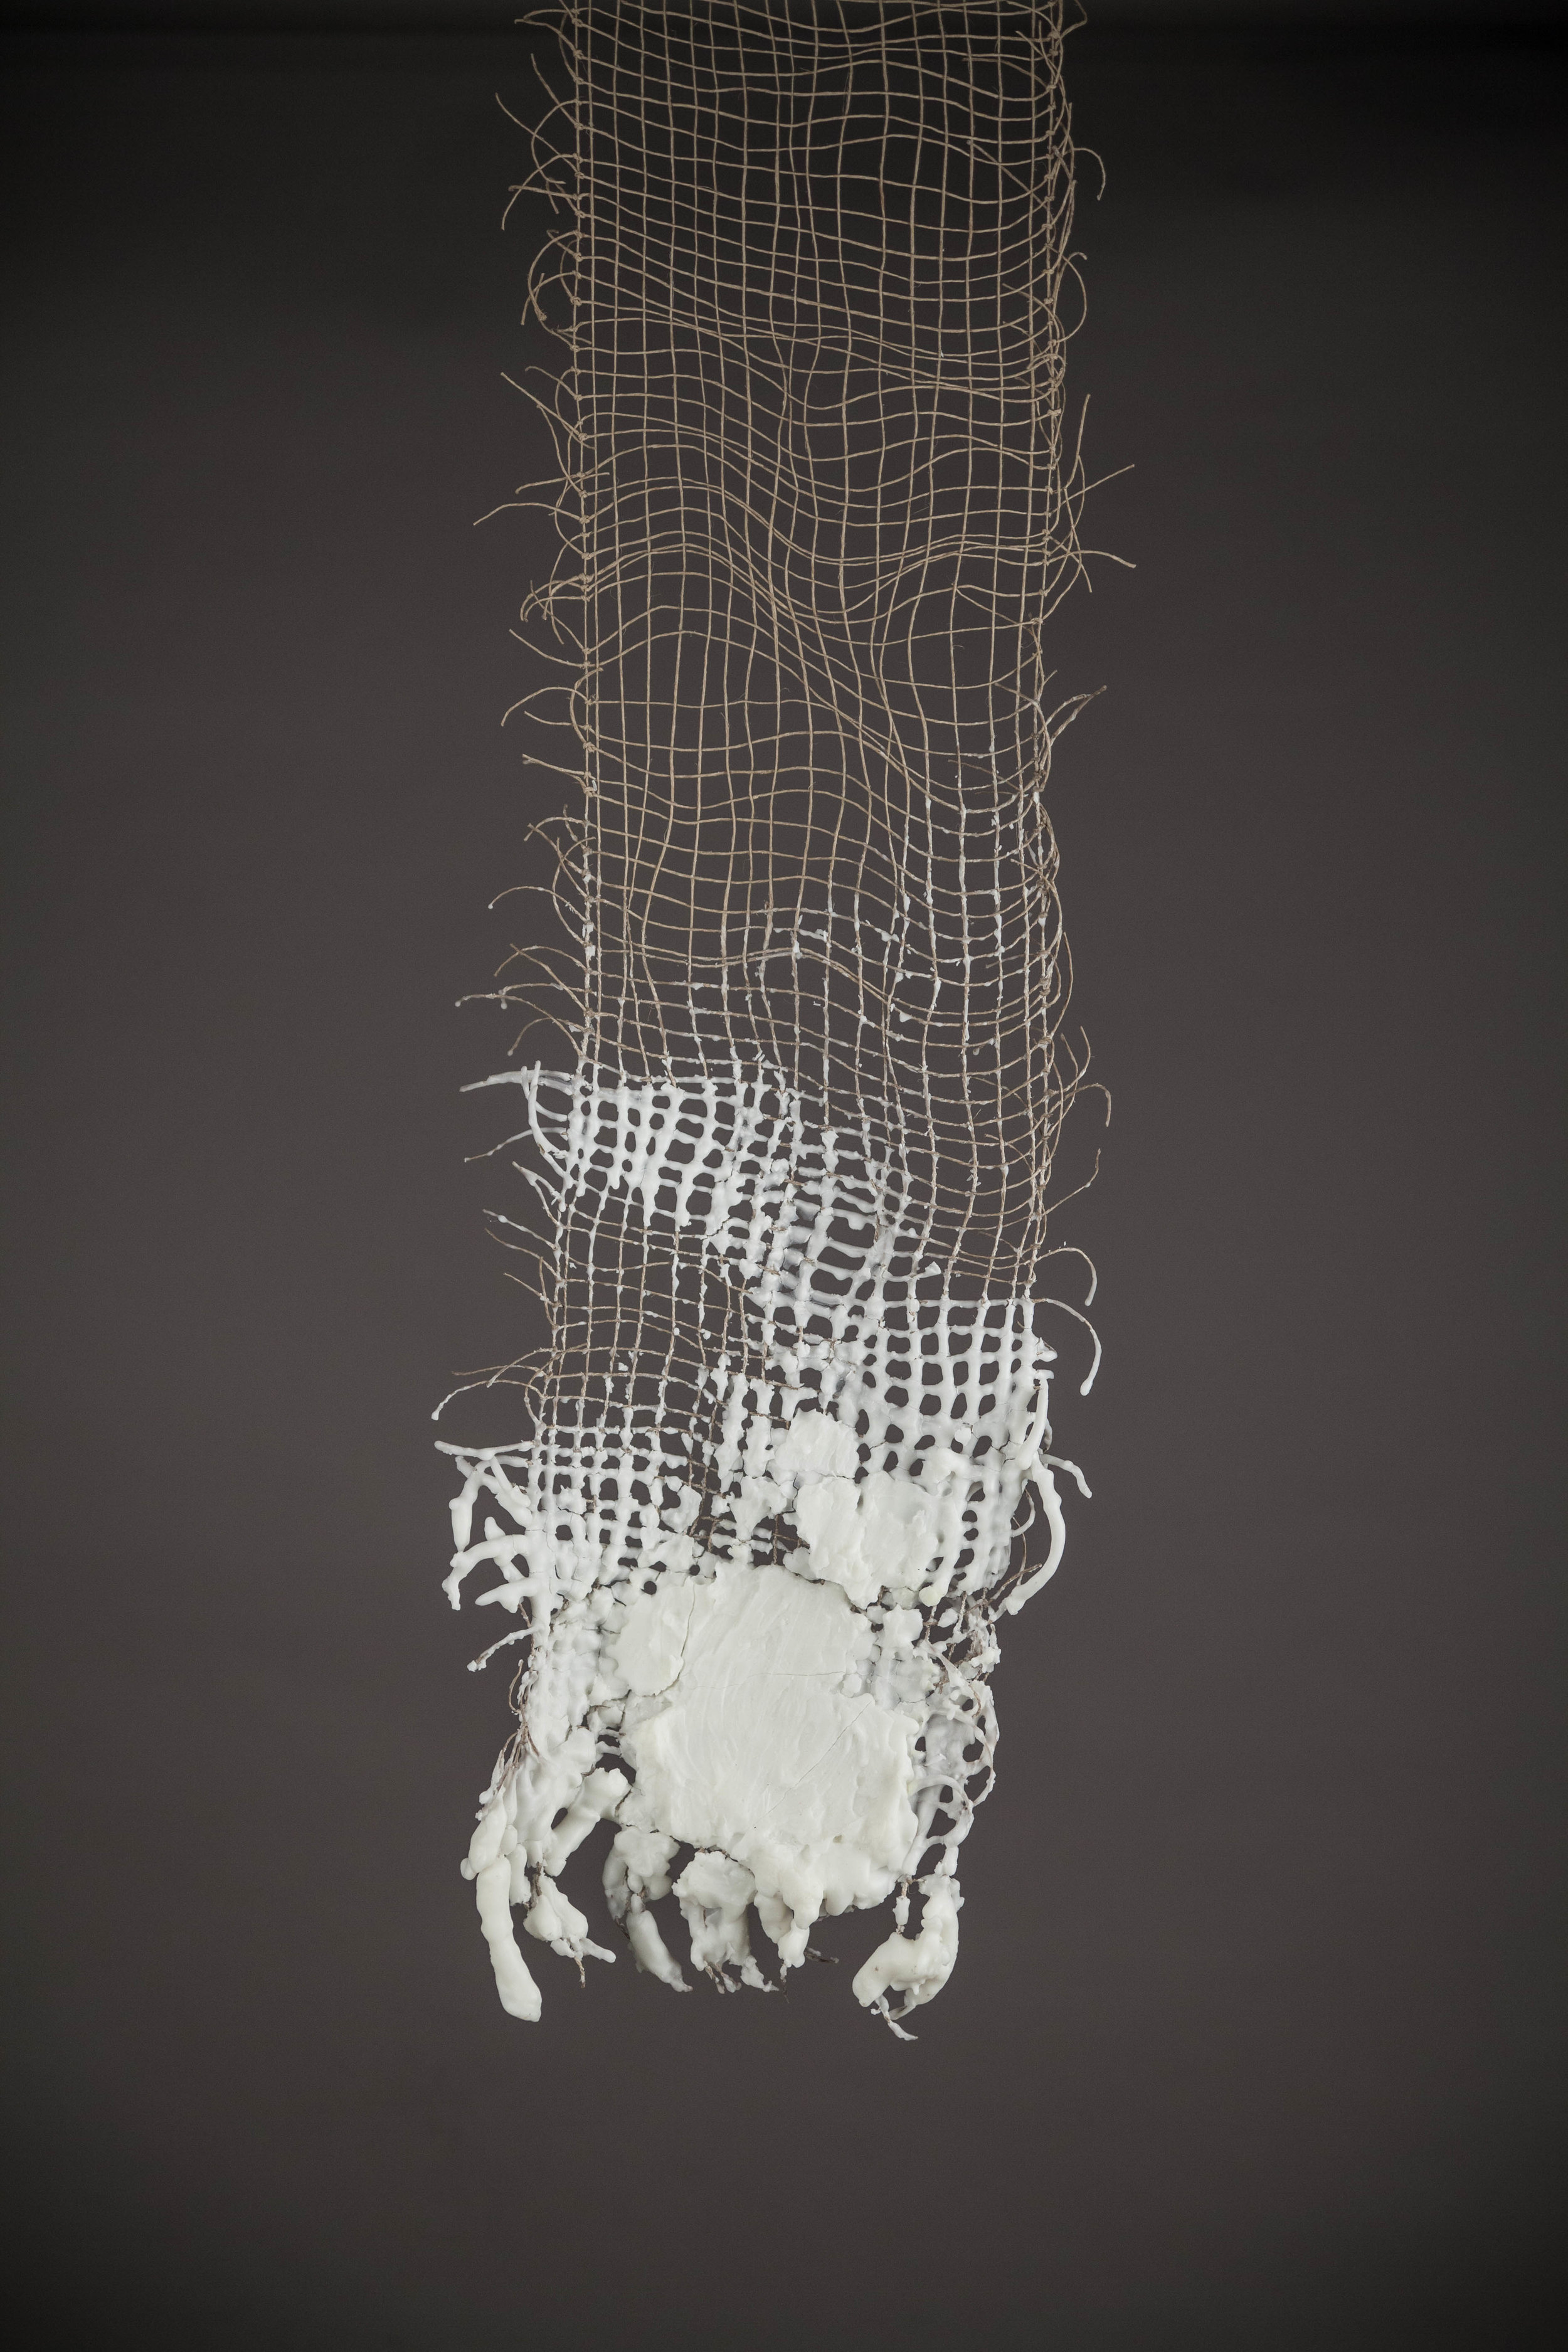 Encrusted Net from Gilead